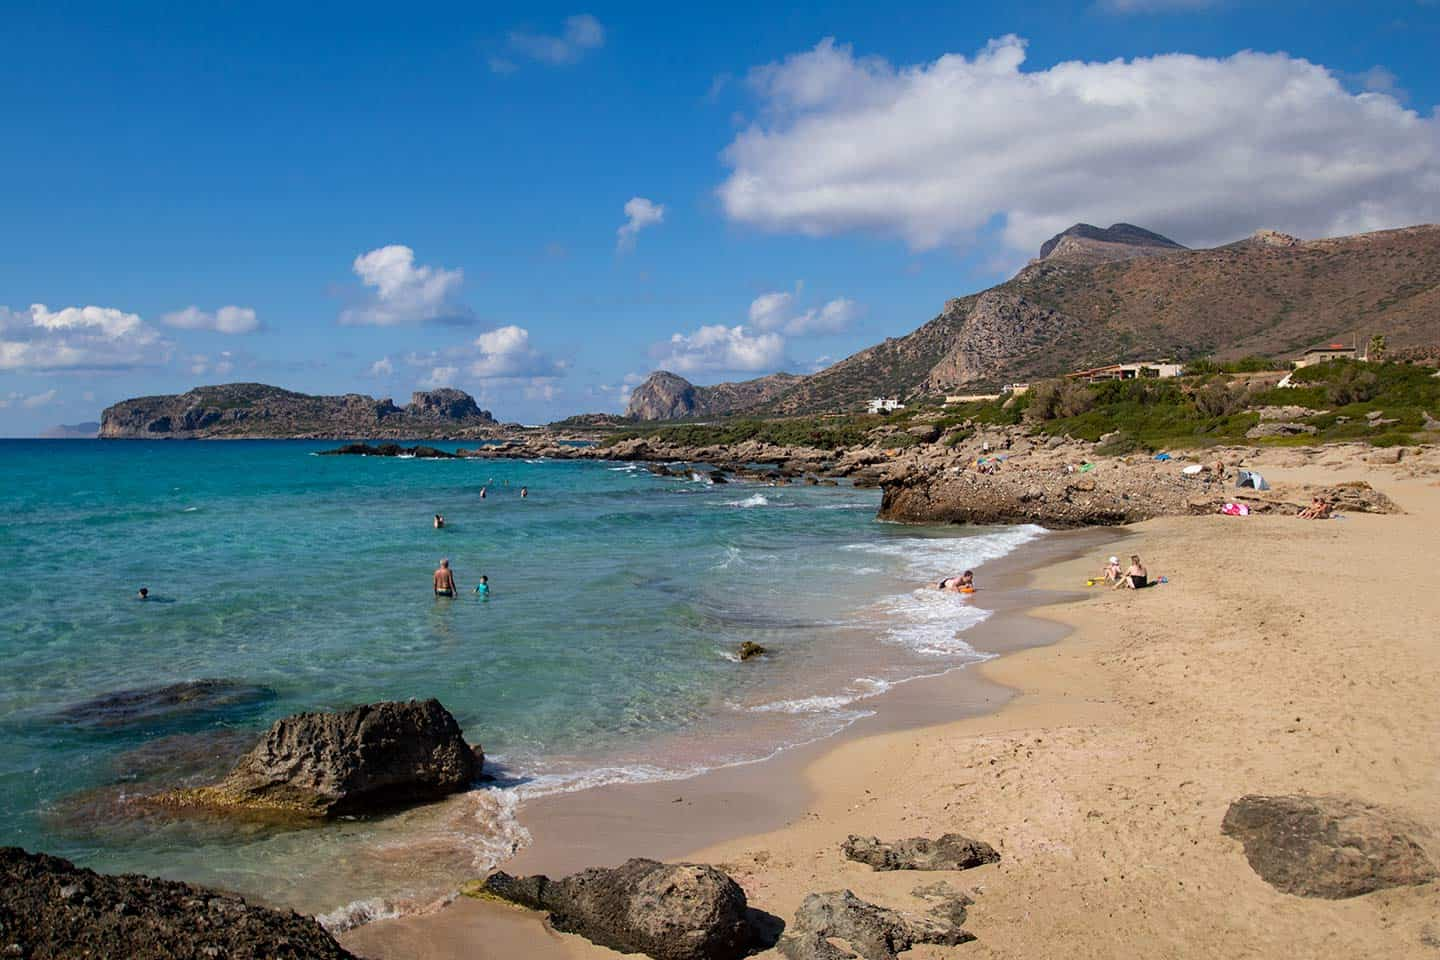 Image of Karkatsouli beach Falassarna Crete Greece